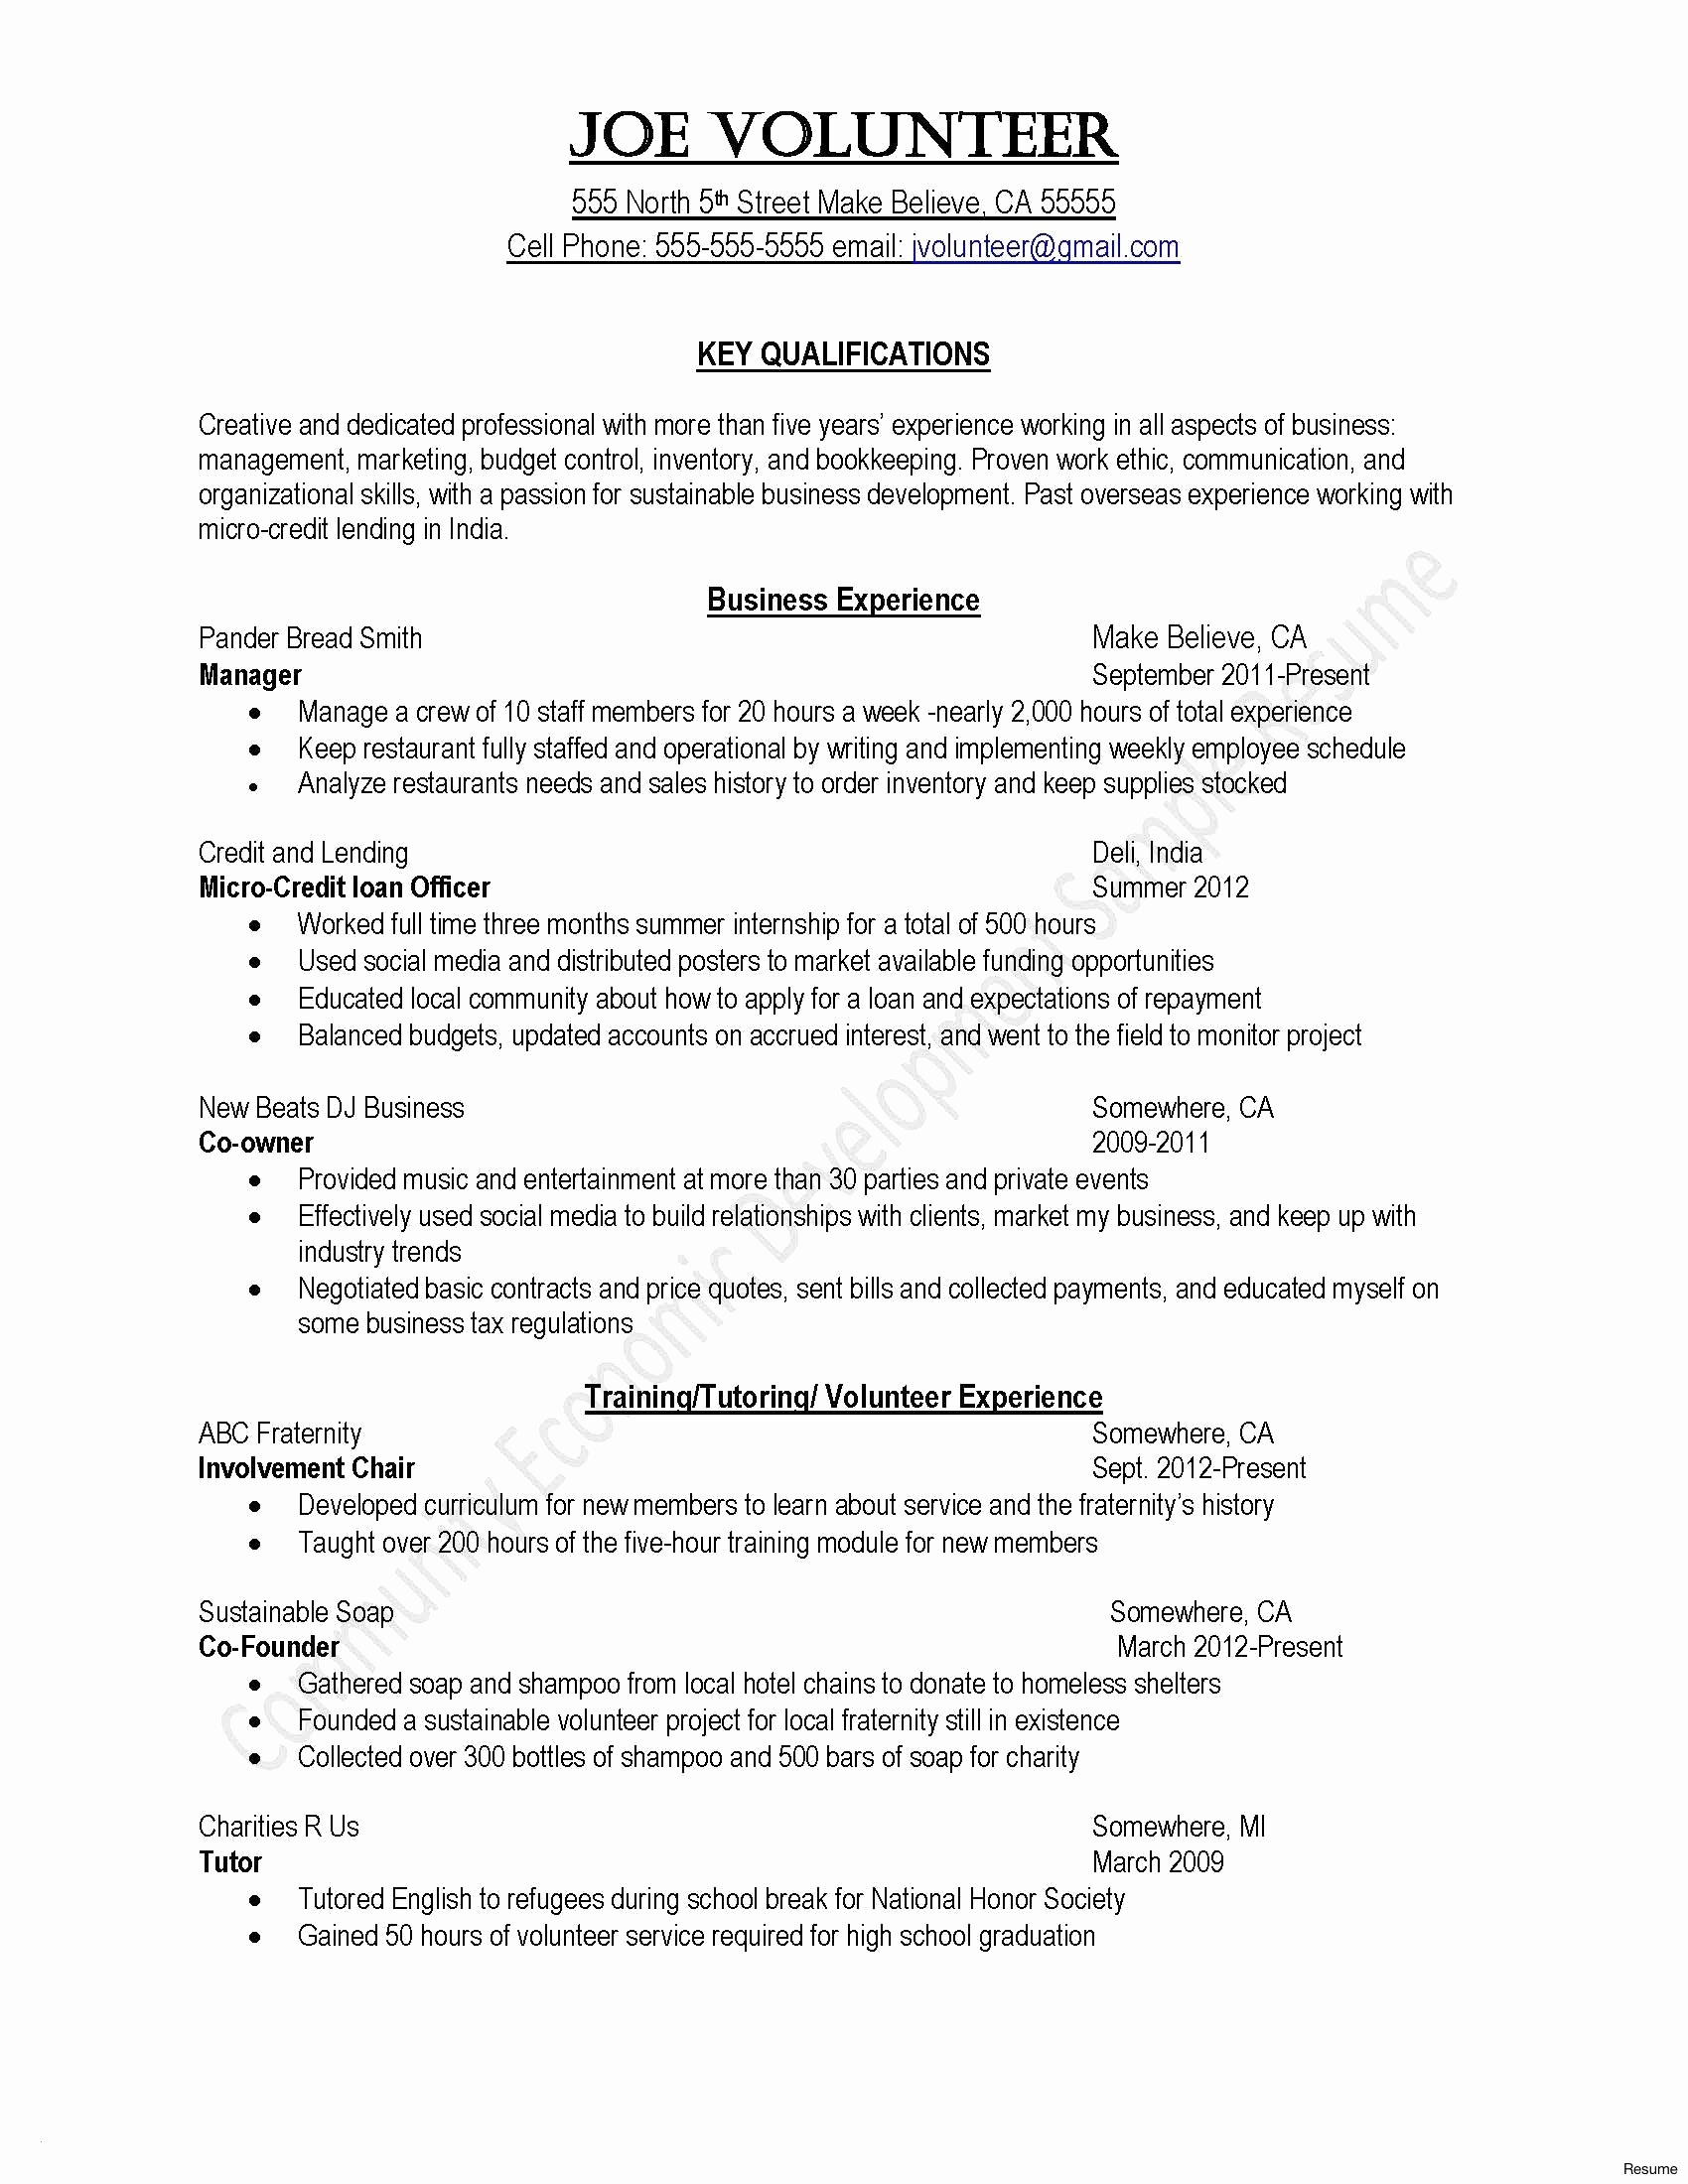 Resume Template for Receptionist - Chiropractic Receptionist Resume Paragraphrewriter